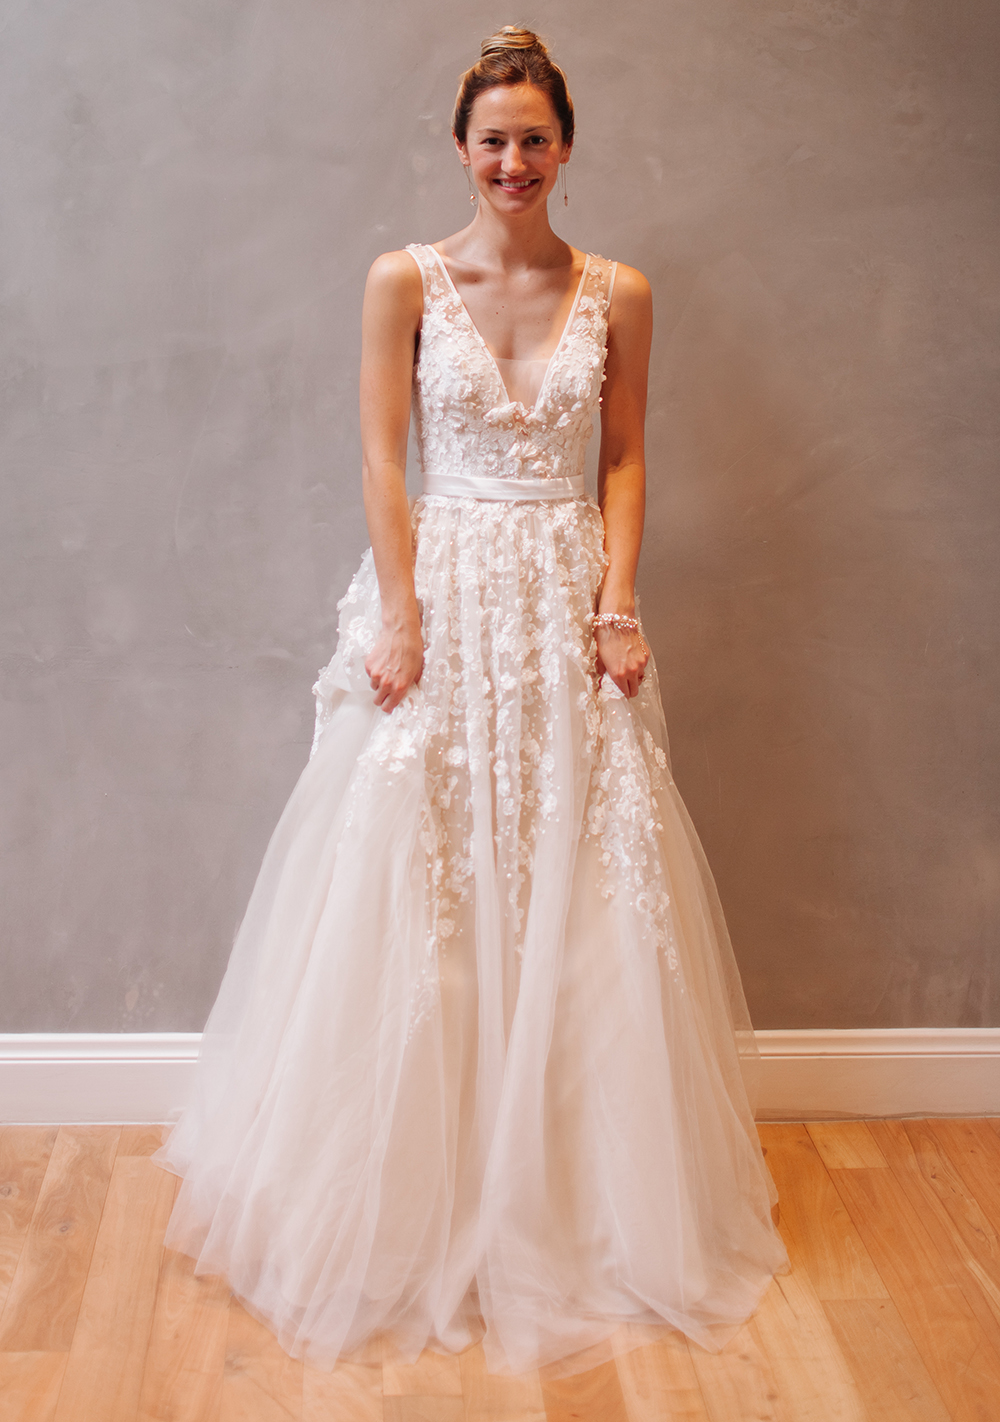 Genial Livvyland Blog Bhldn Store Front Houston Texas Bridal  ...